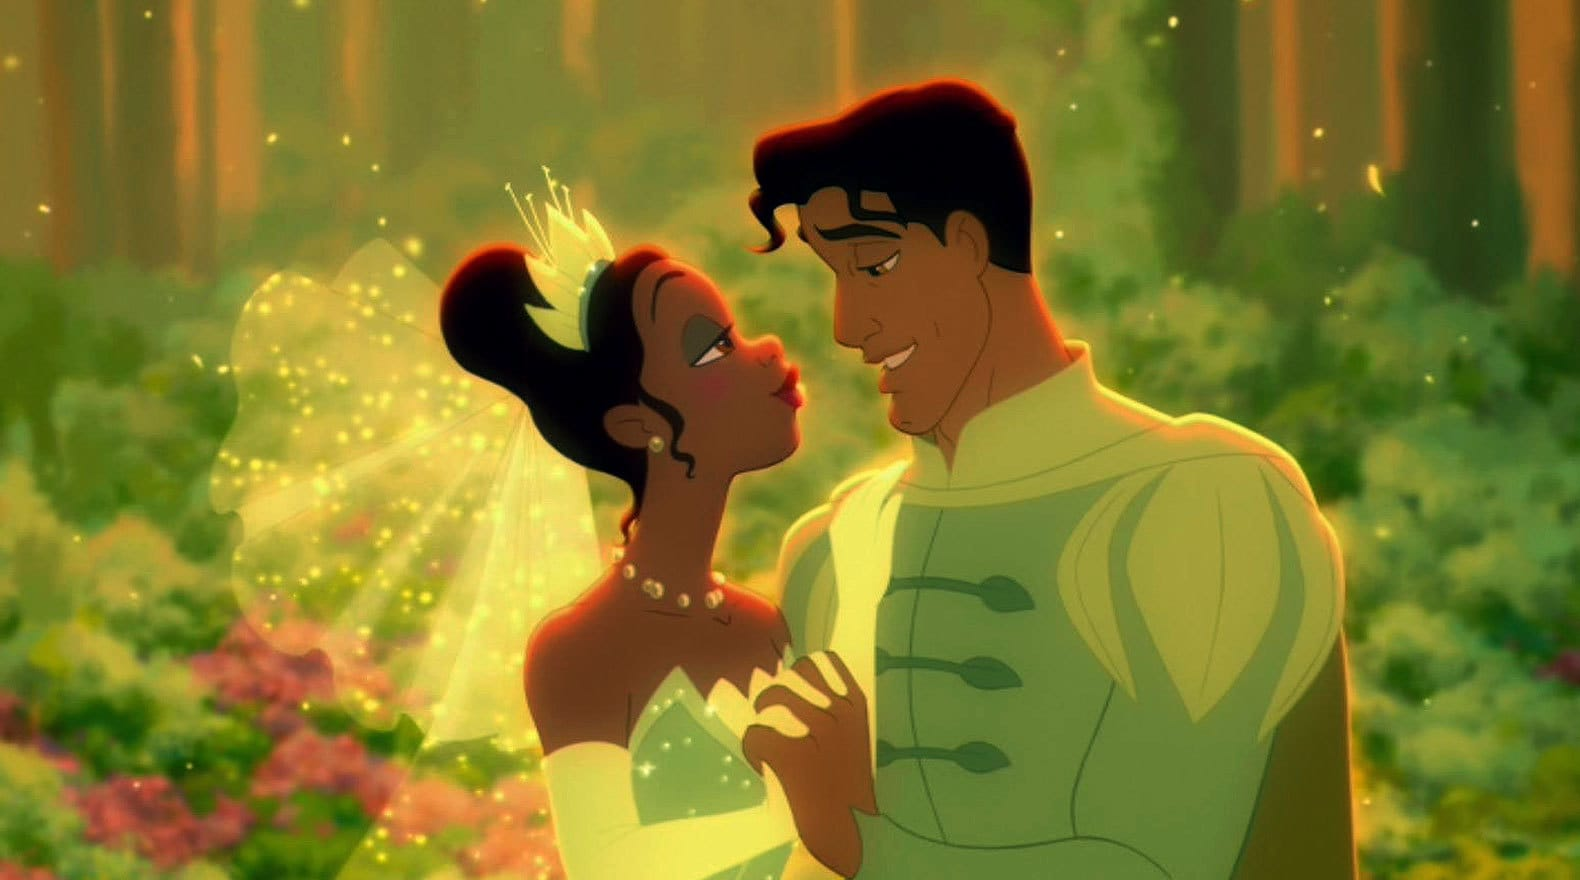 Tiana and Naveen dancing together at their wedding in The Princess and the Frog